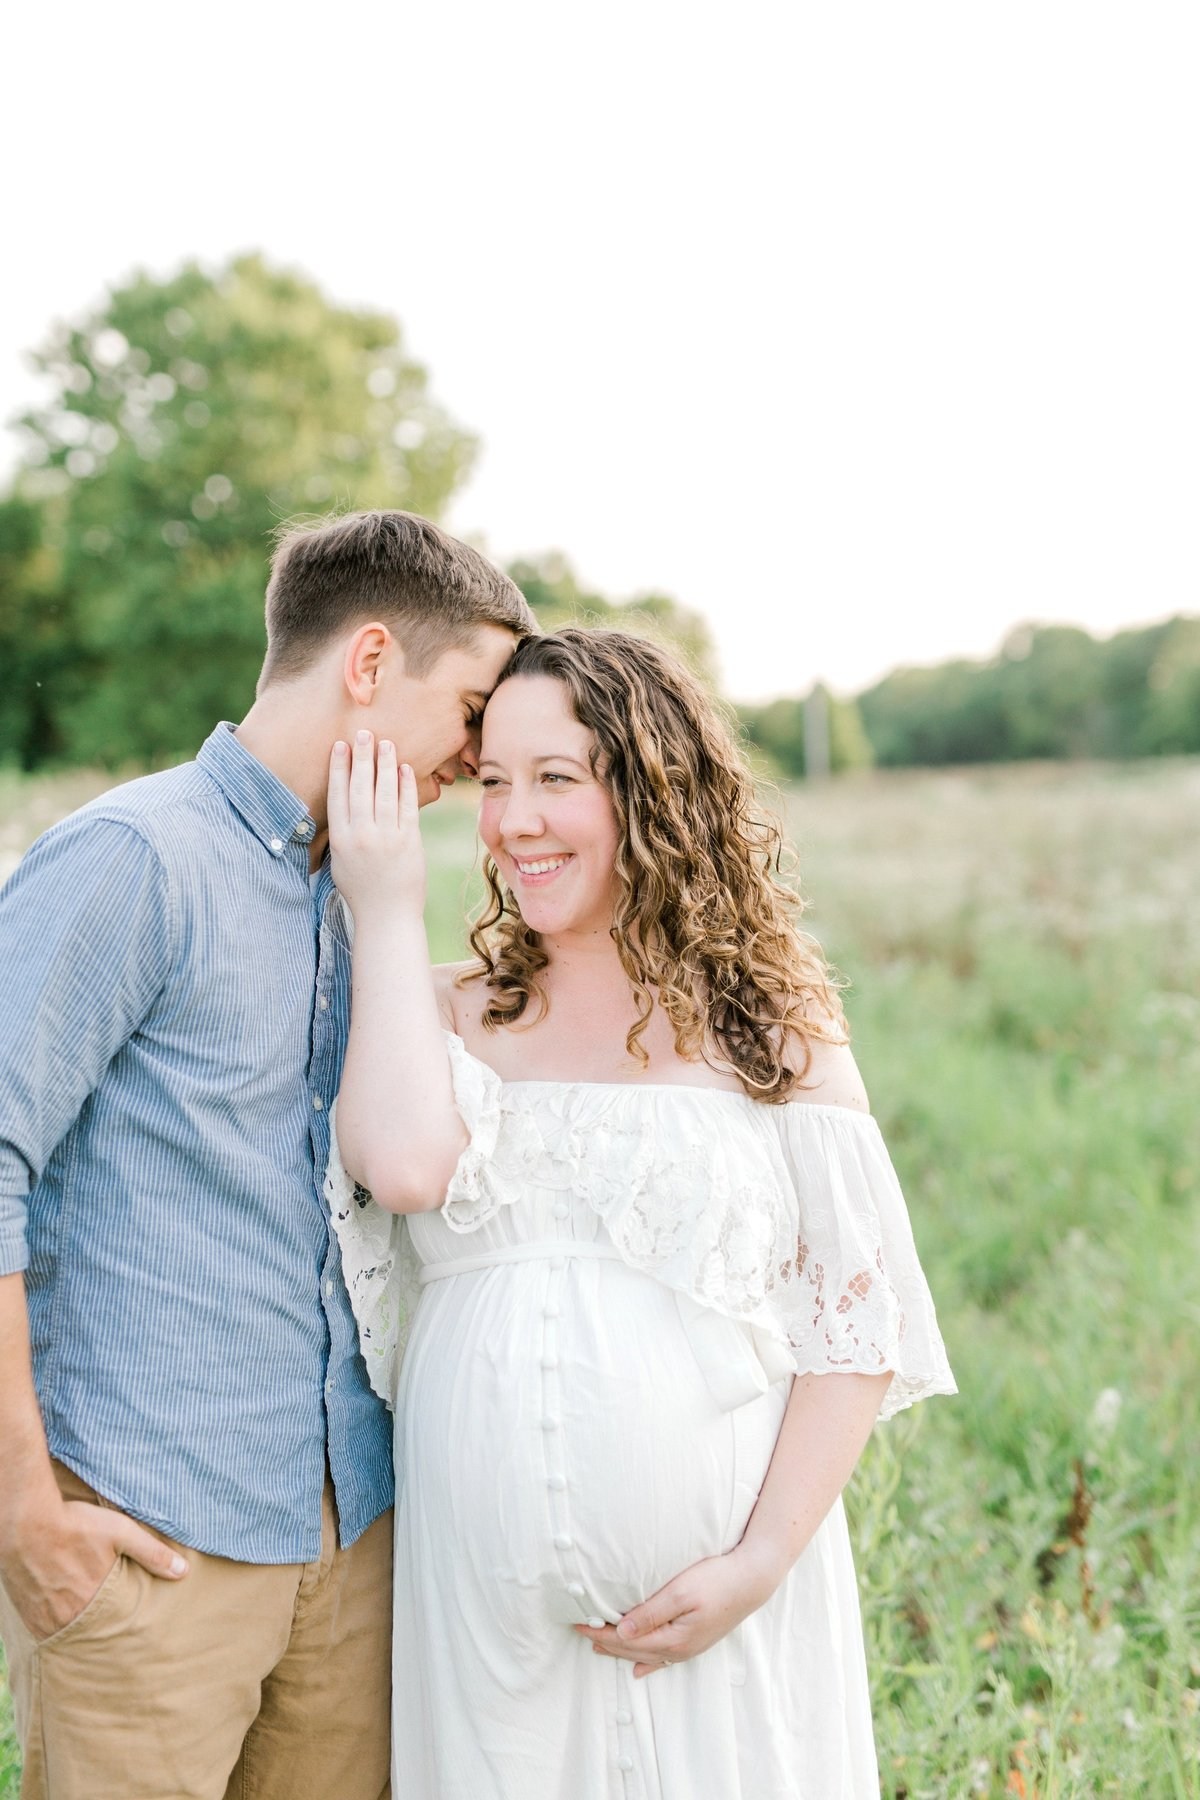 ETHEREAL SUMMER MATERNITY SESSION | MECHANICSBURG MATERNITY PHOTOGRAPHER_0968